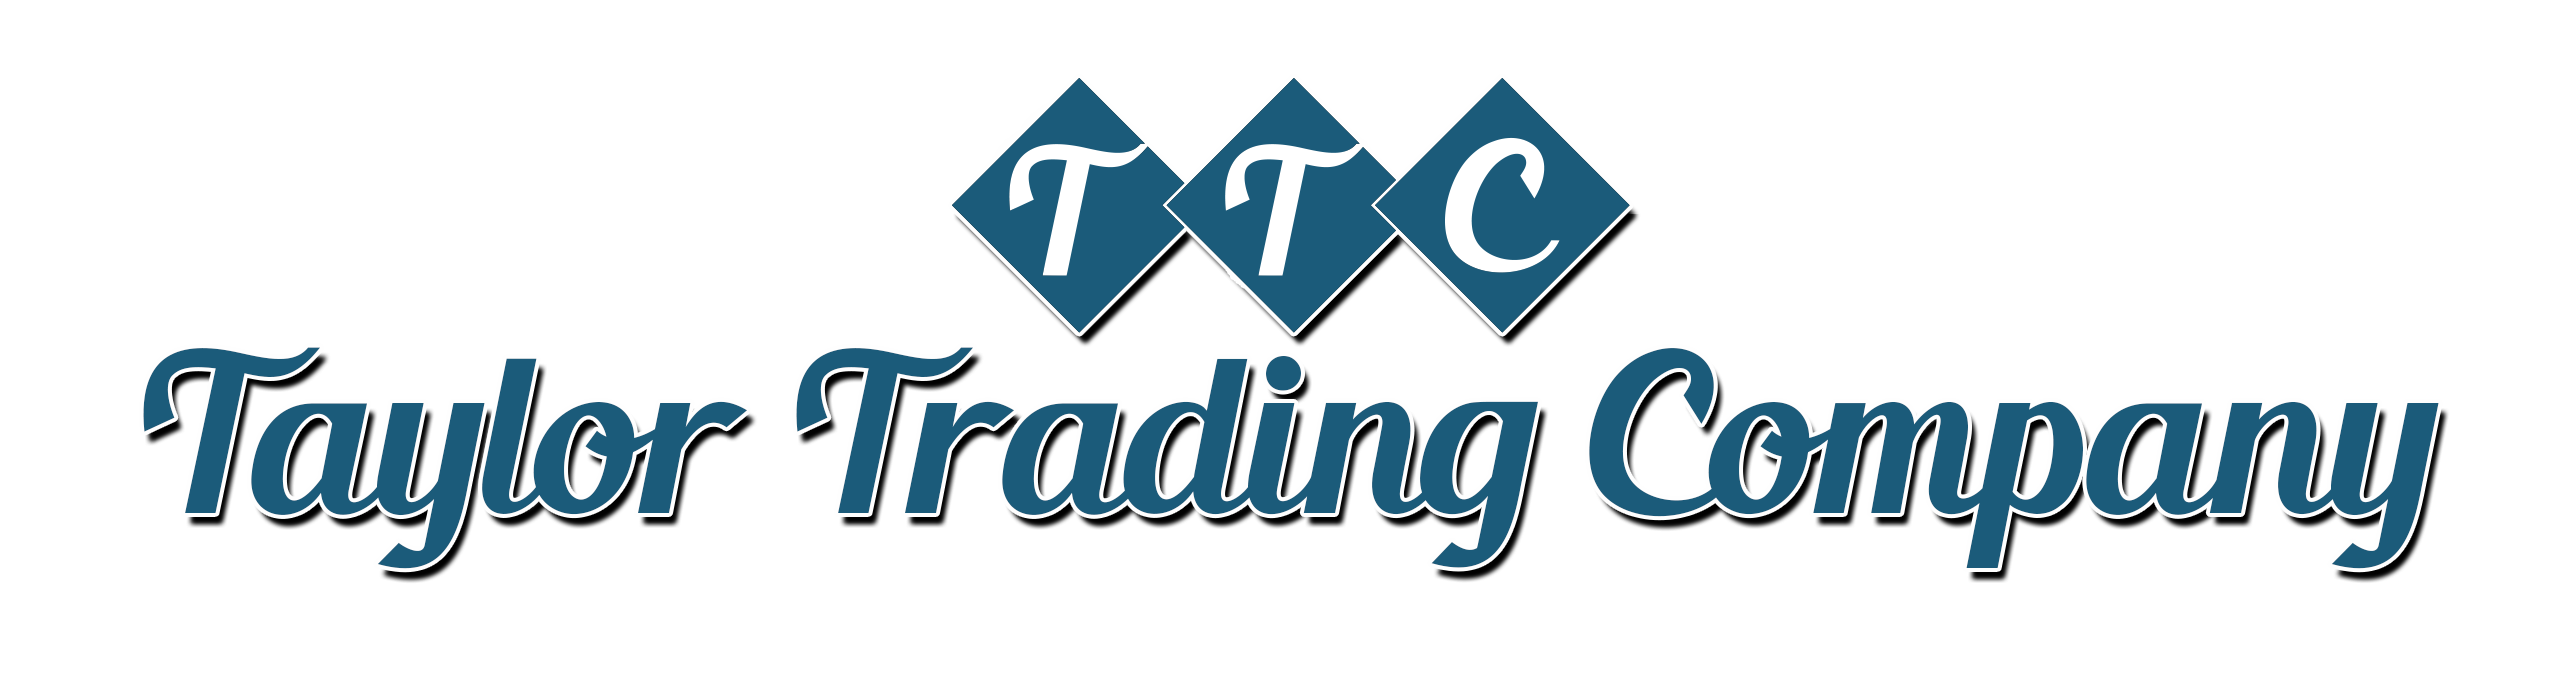 Taylor Trading Co